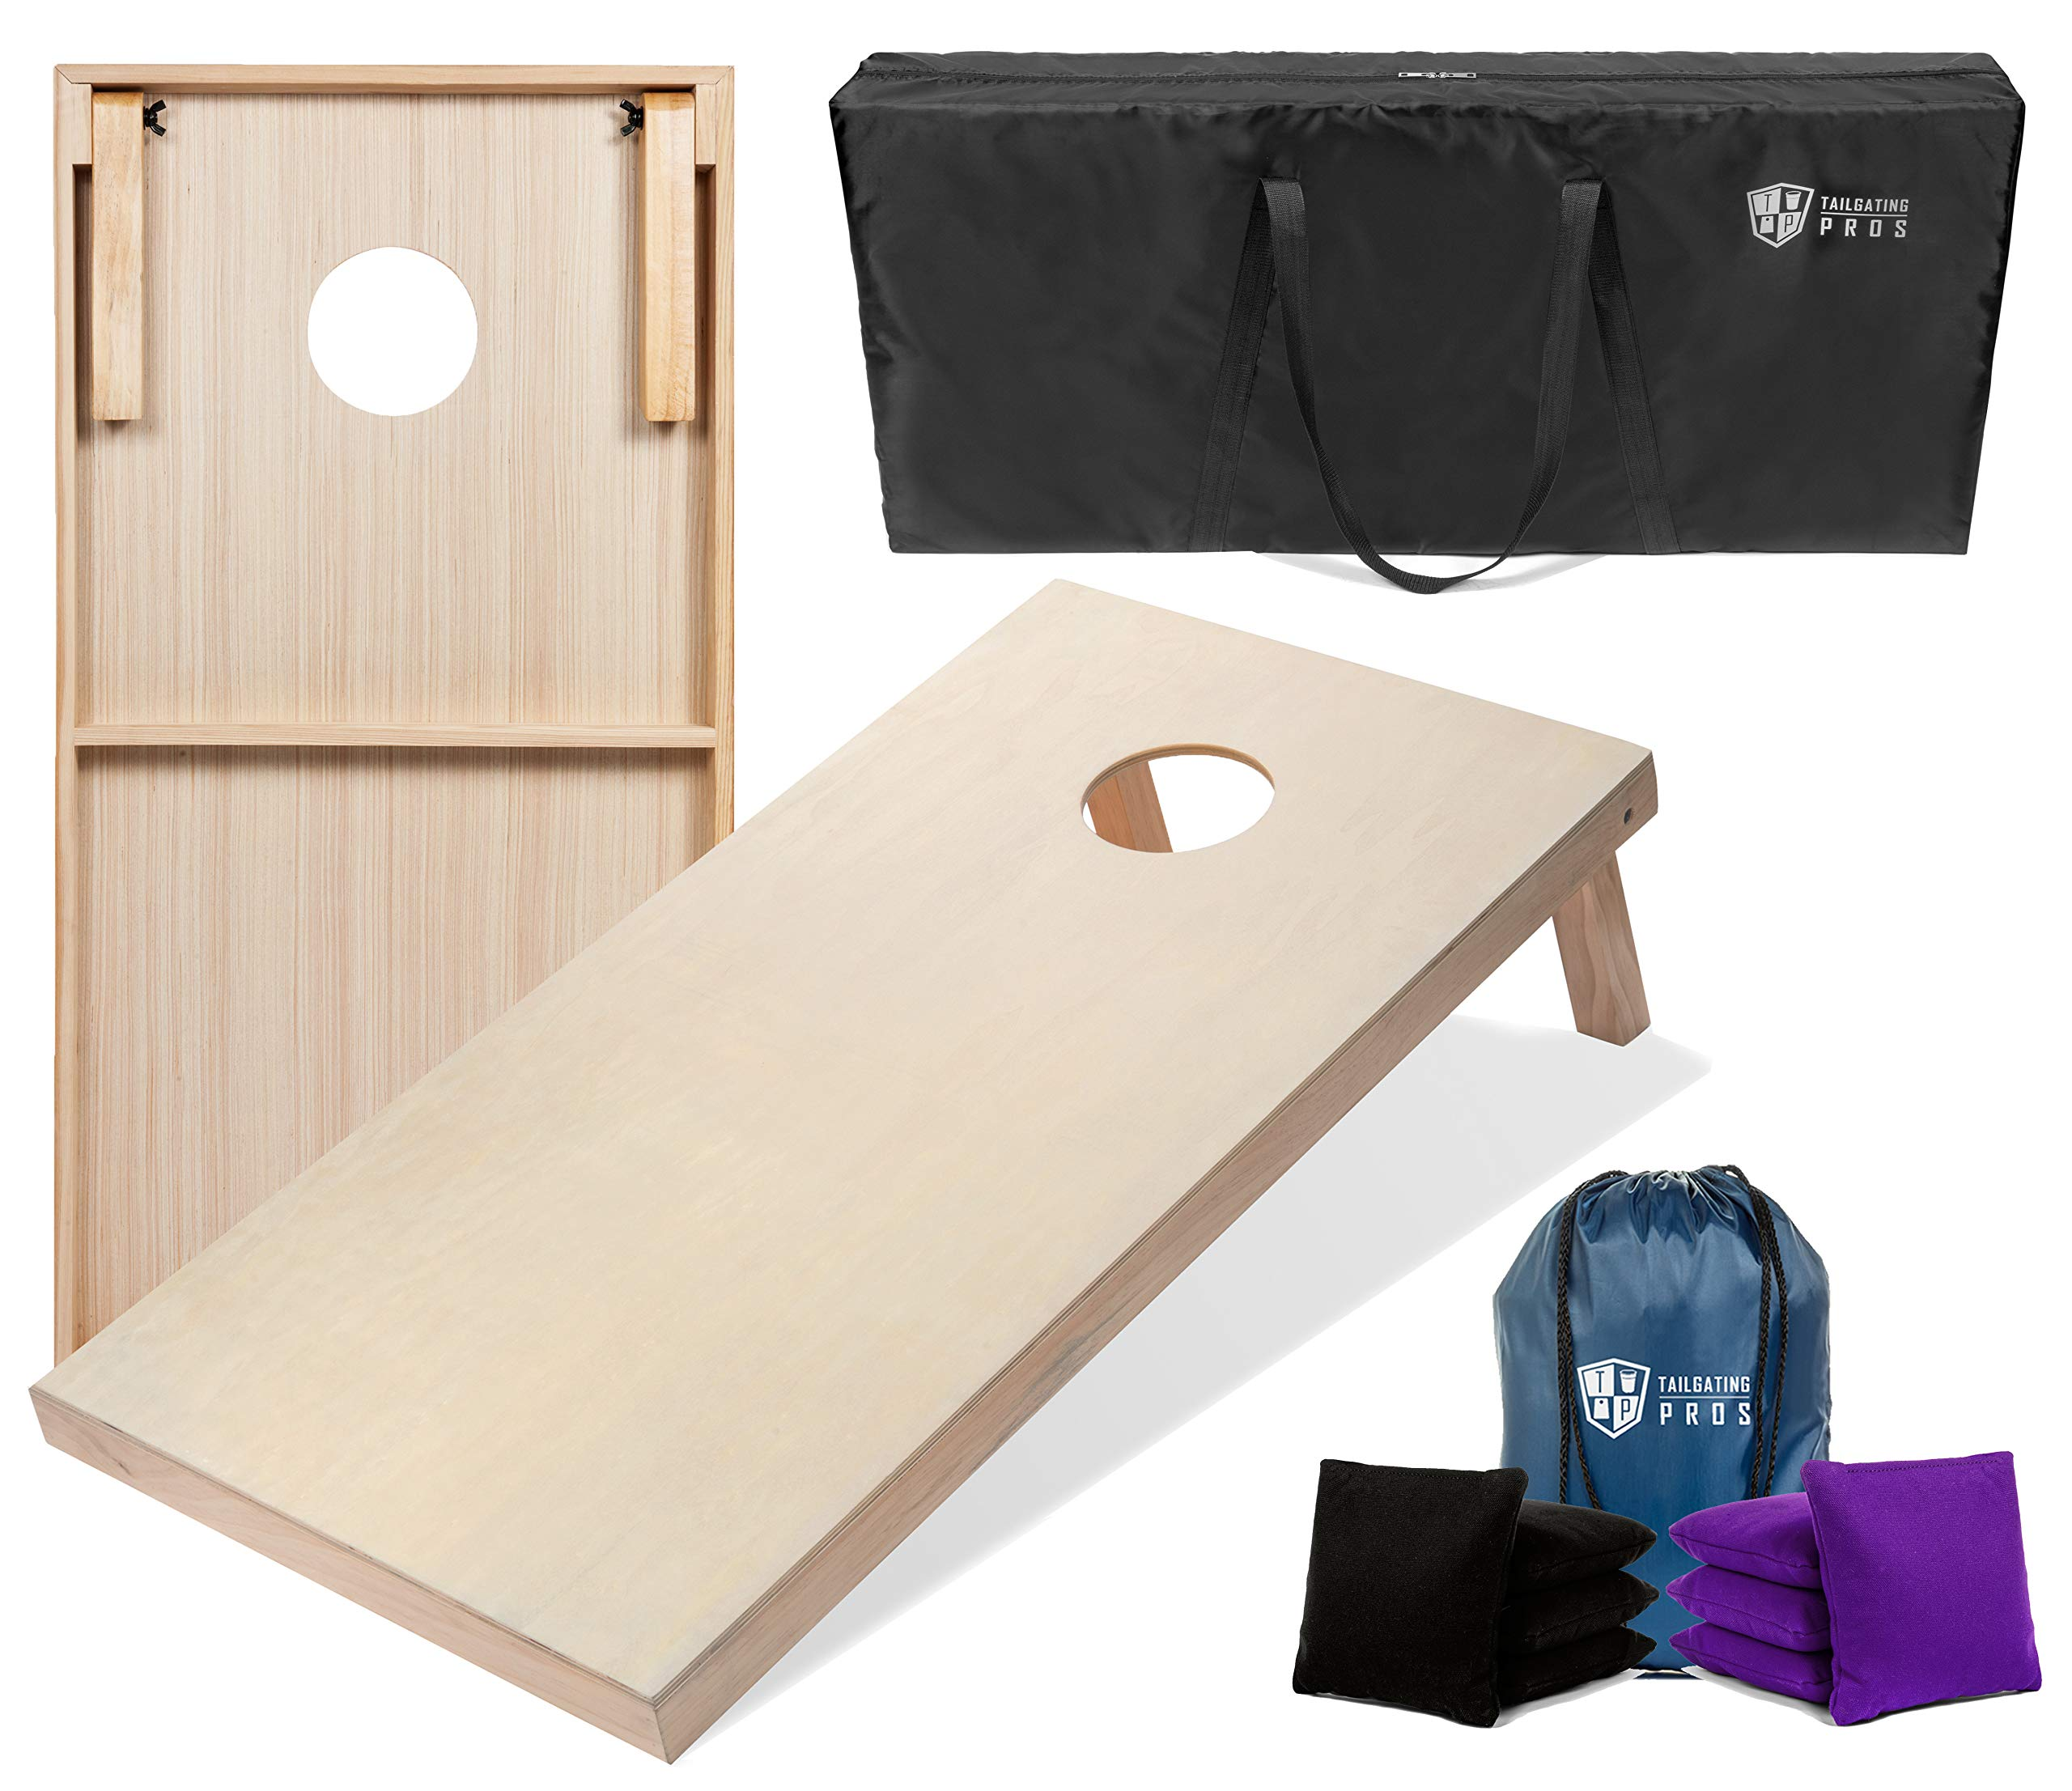 Tailgating Pros 4'x2' & 3'x2' Cornhole Boards w/Carrying Case & Set of 8 Cornhole Bags (You Pick Colors) 150+ Color Combos! (Black/Purple, 4'x2' Boards) by Tailgating Pros